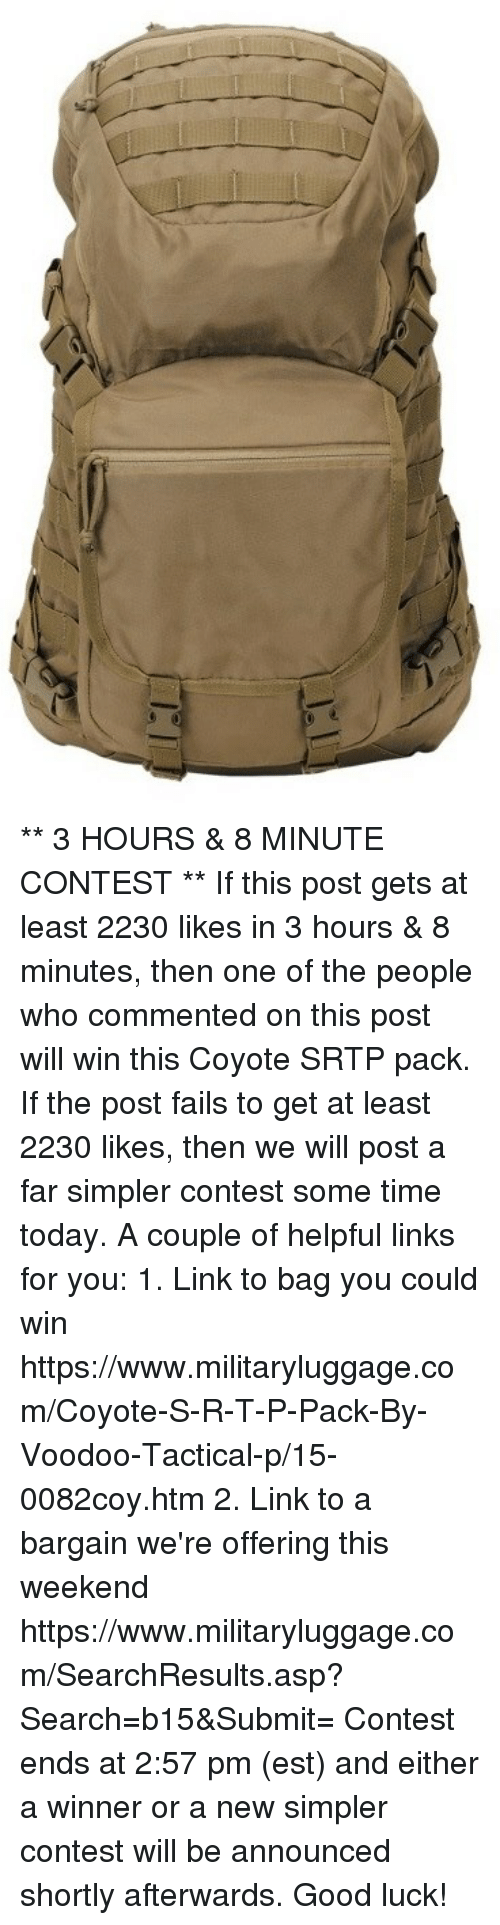 Memes, Coyote, and Good: ** 3 HOURS & 8 MINUTE CONTEST **  If this post gets at least 2230 likes in 3 hours & 8 minutes, then one of the people who commented on this post will win this Coyote SRTP pack.  If the post fails to get at least 2230 likes, then we will post a far simpler contest some time today.  A couple of helpful links for you:  1.  Link to bag you could win https://www.militaryluggage.com/Coyote-S-R-T-P-Pack-By-Voodoo-Tactical-p/15-0082coy.htm  2.  Link to a bargain we're offering this weekend  https://www.militaryluggage.com/SearchResults.asp?Search=b15&Submit=  Contest ends at 2:57 pm (est) and either a winner or a new simpler contest will be announced shortly afterwards.  Good luck!